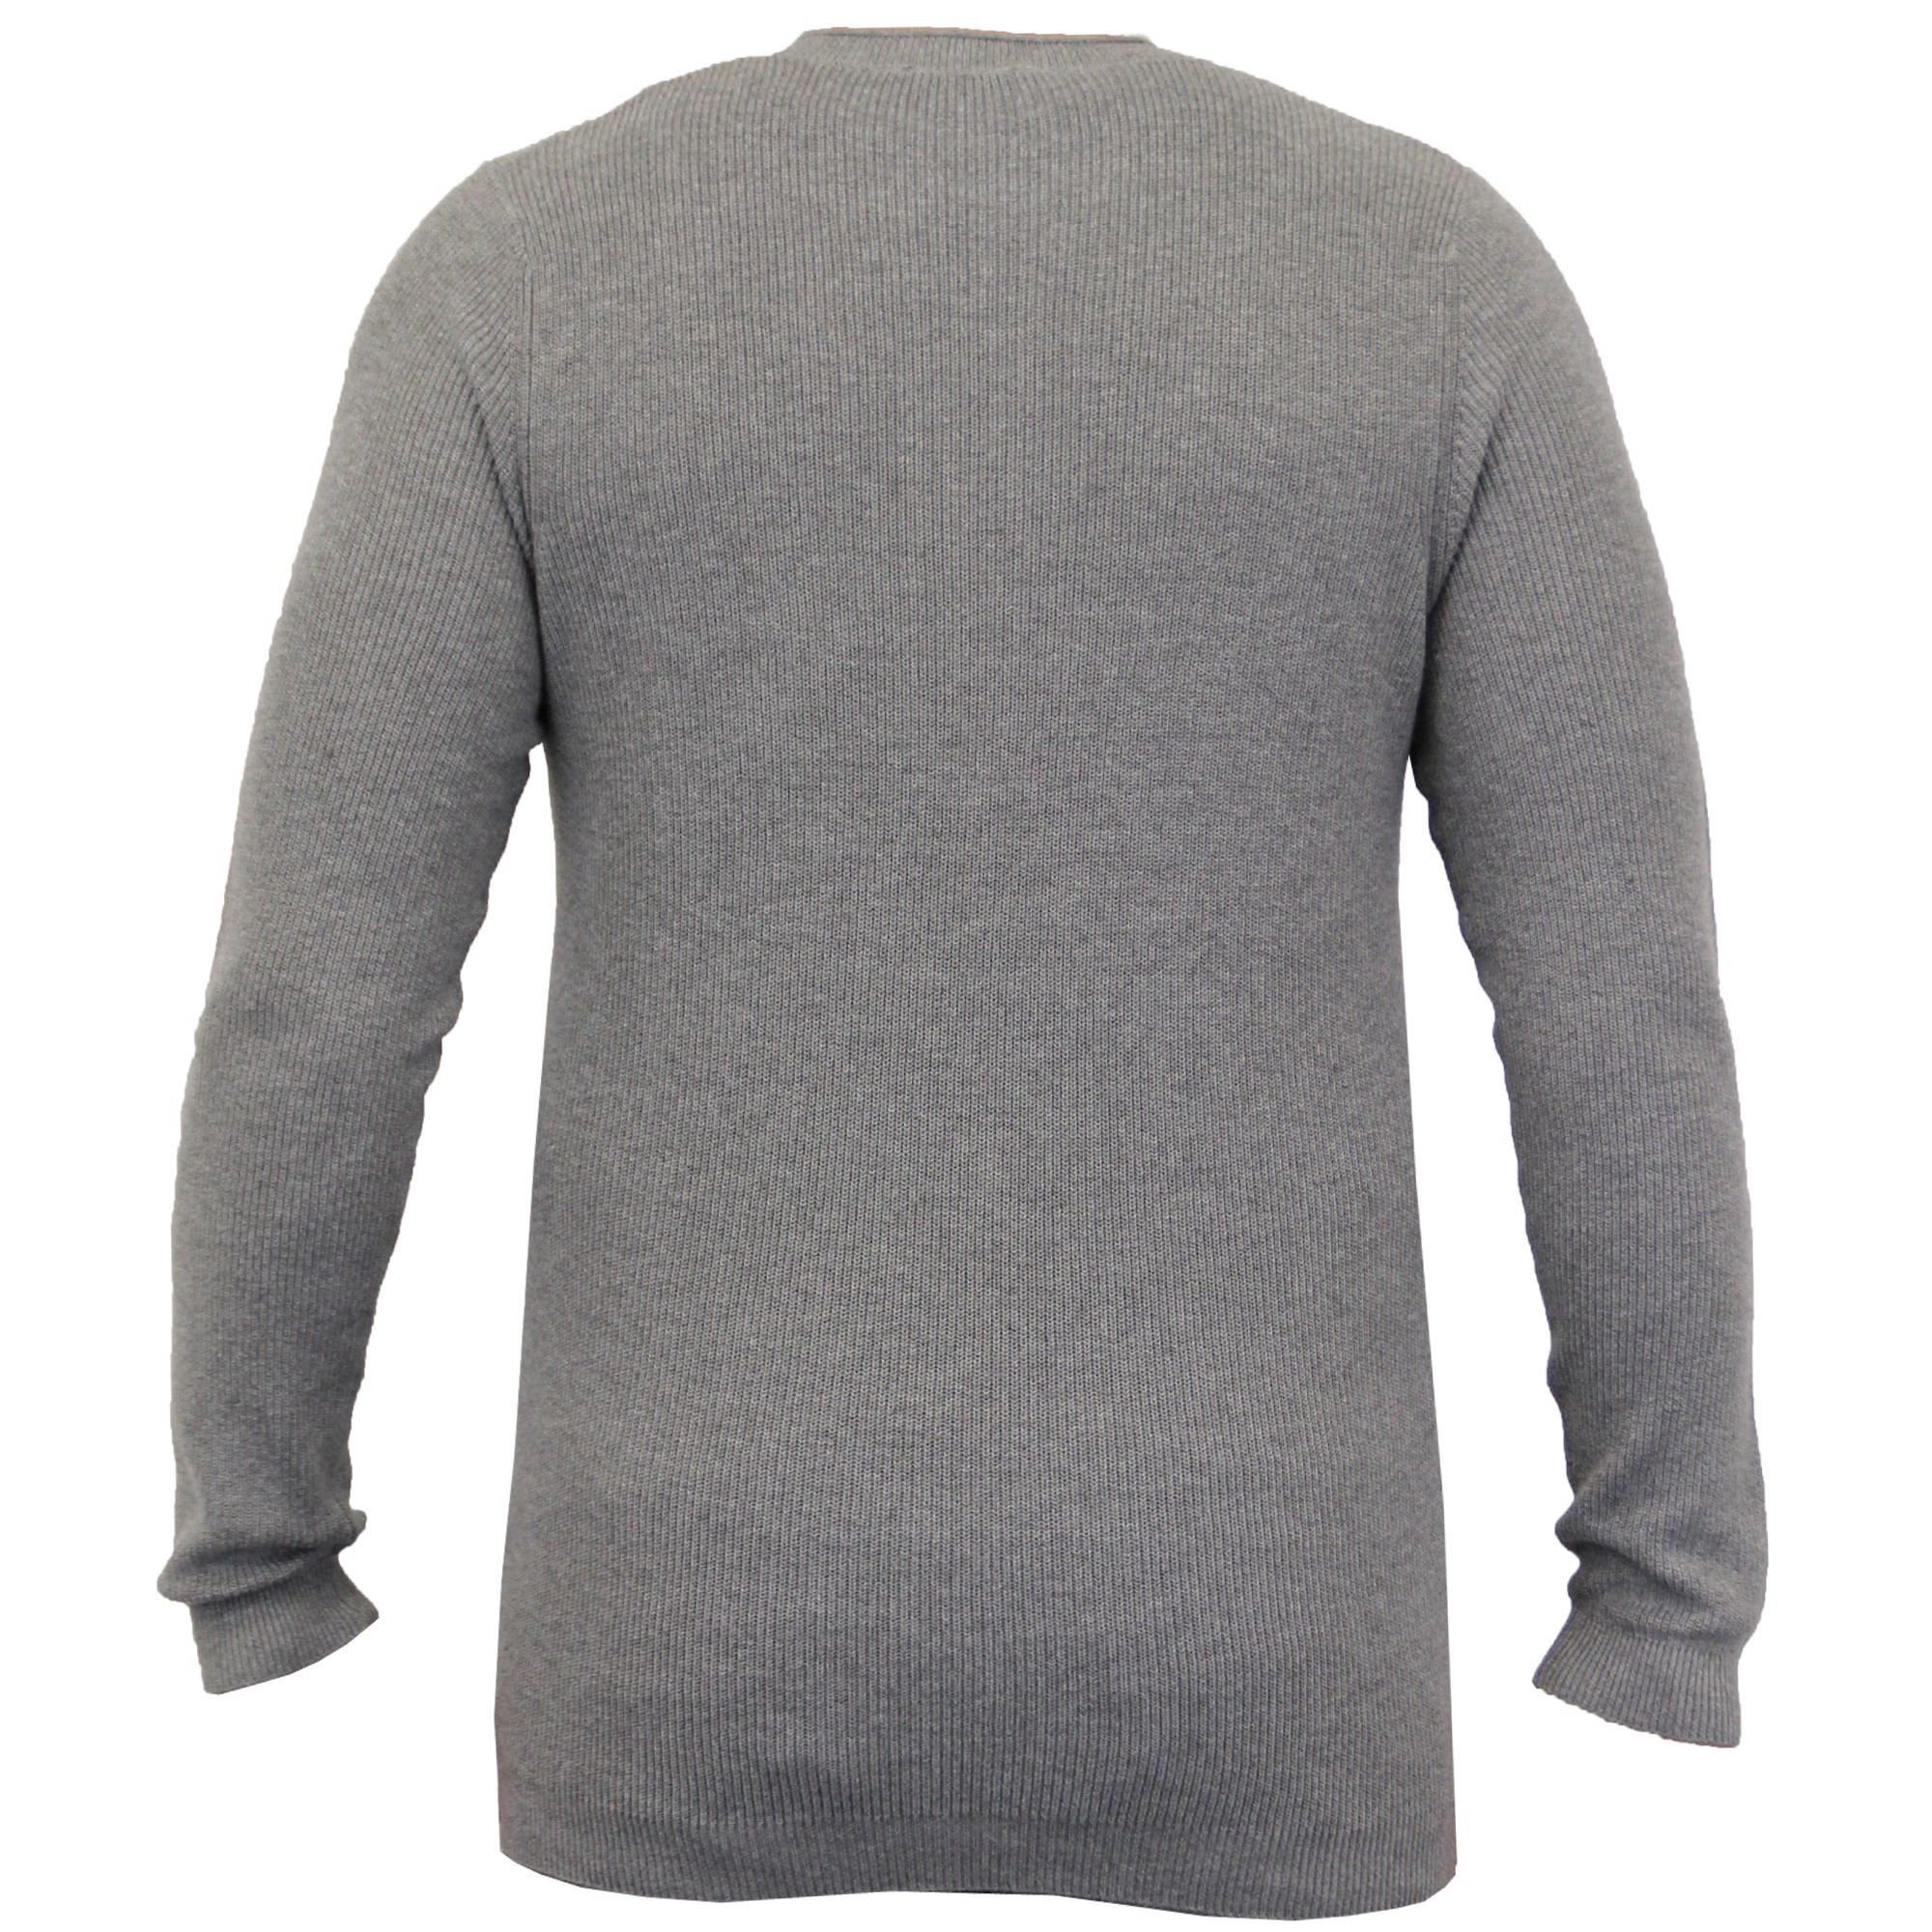 Mens-Grandad-Jumpers-Dissident-Knitted-Ribbed-Top-Lightweight-Casual-Winter-New thumbnail 4